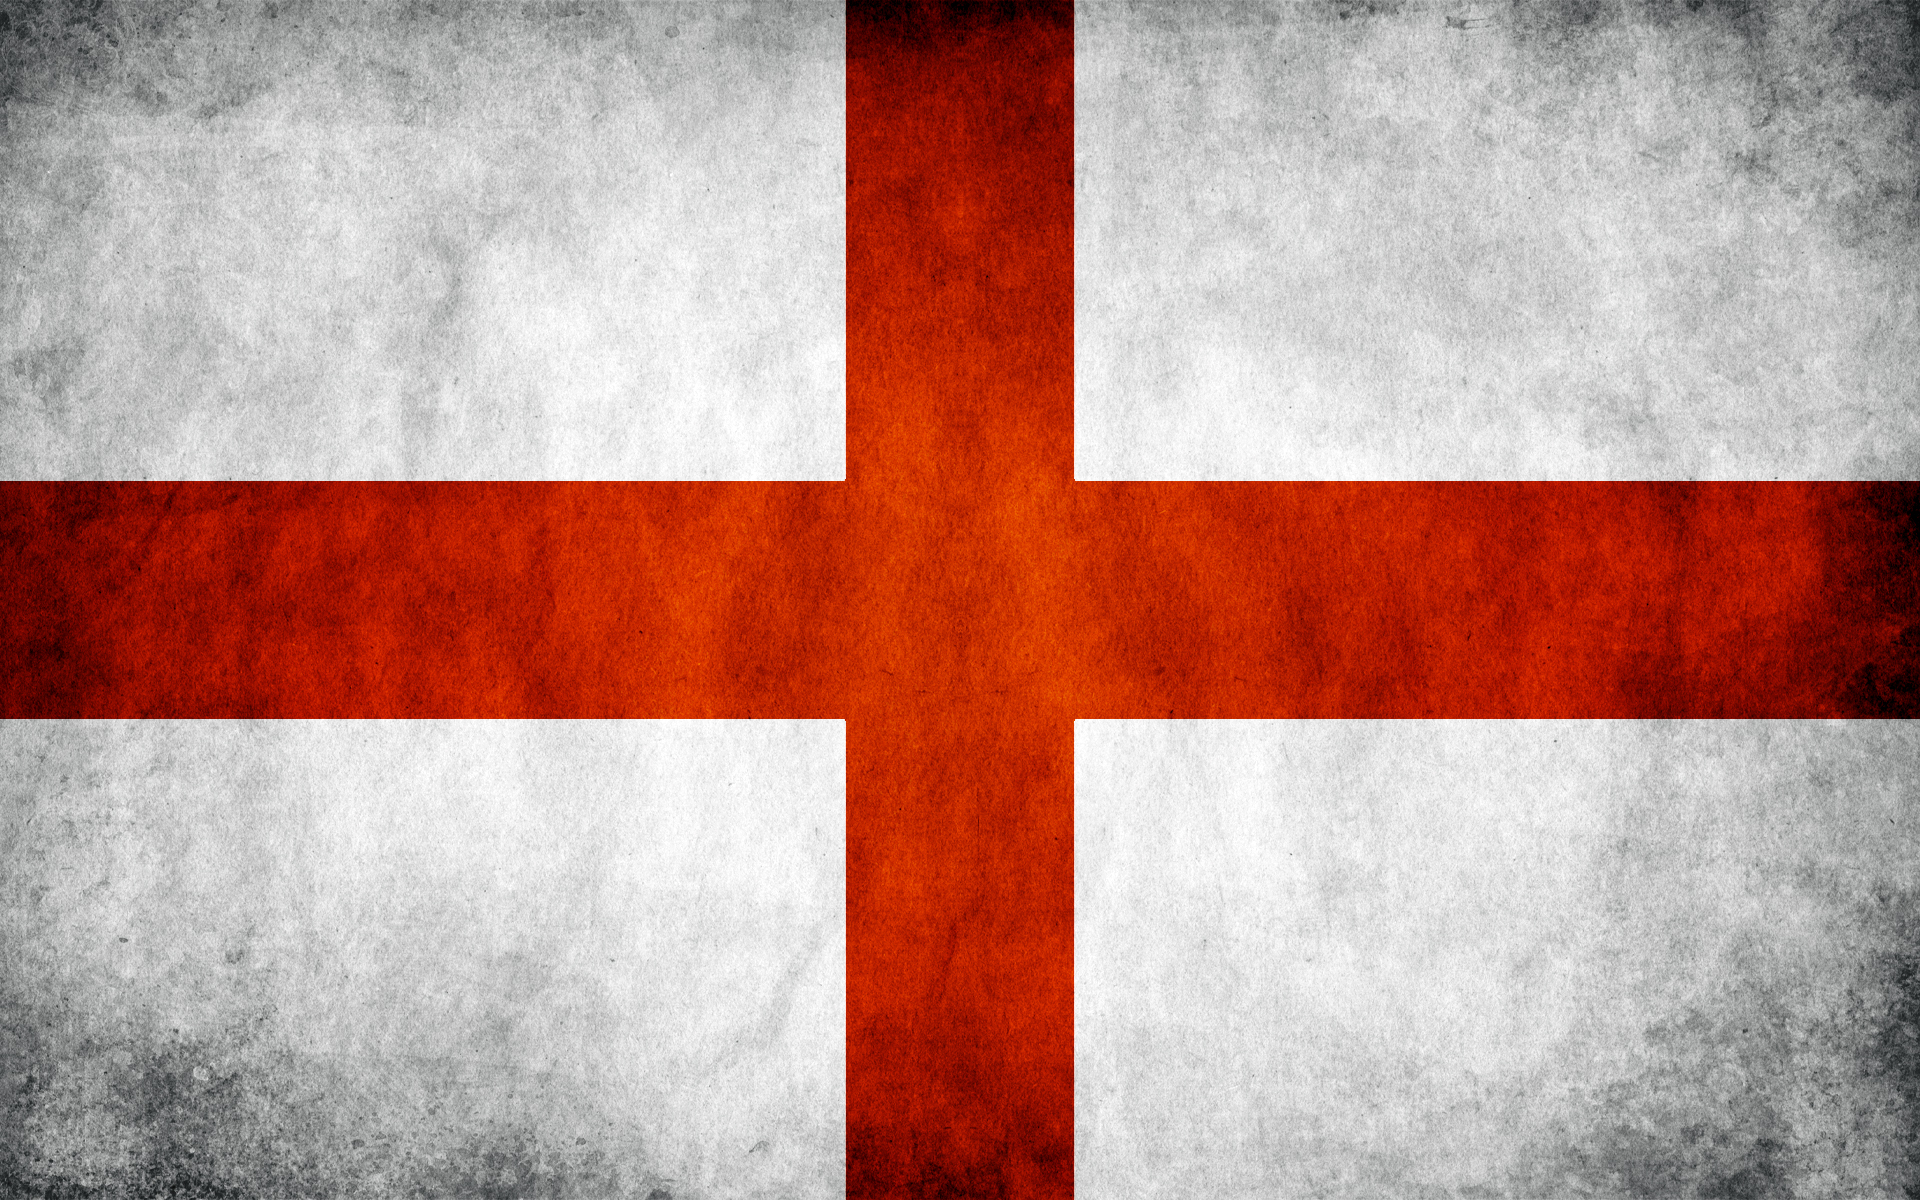 3 Flag Of England Hd Wallpapers Backgrounds